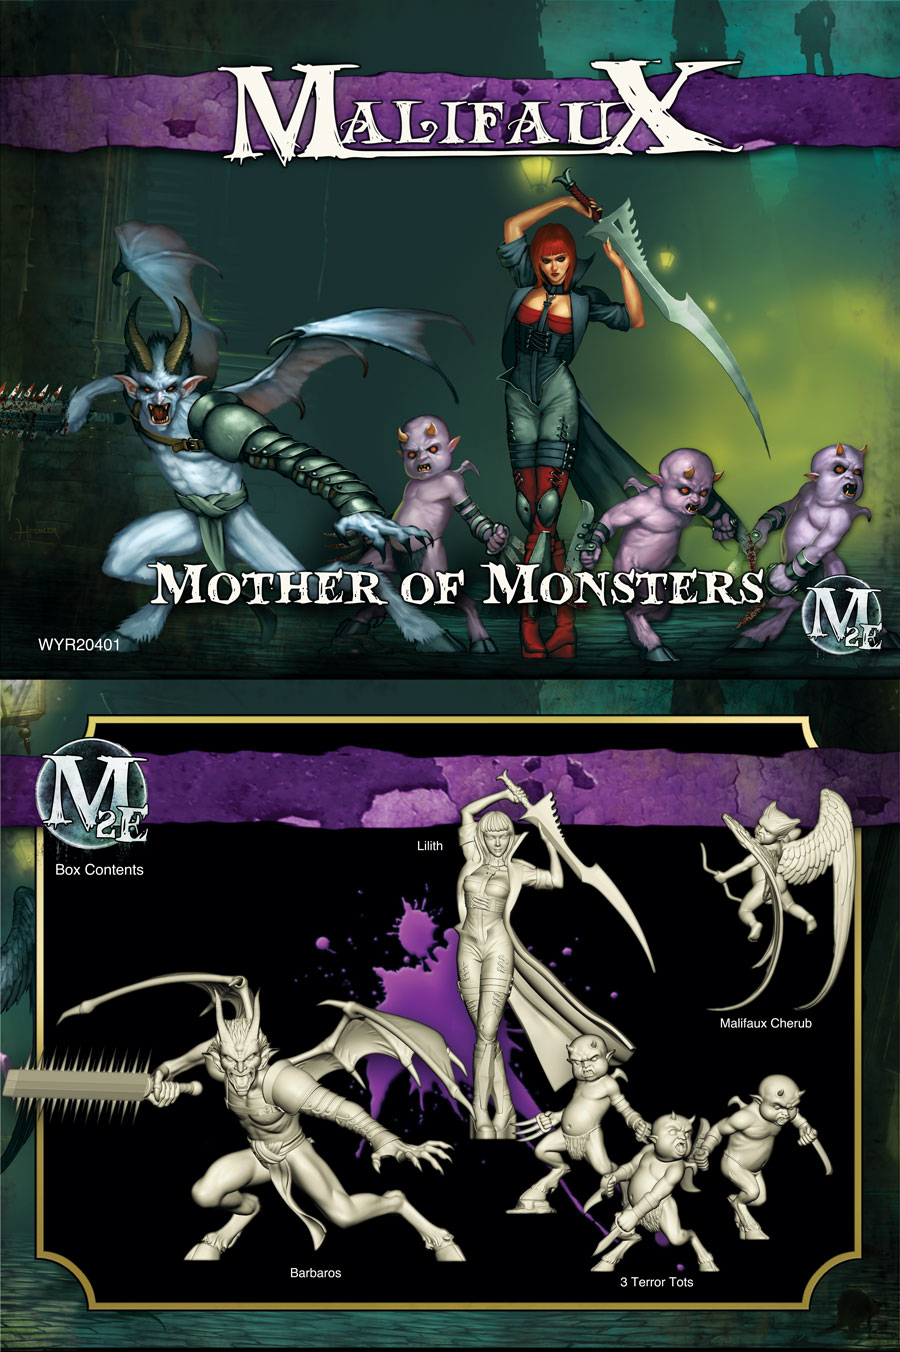 WYR20401-MotherOfMonsters.jpg